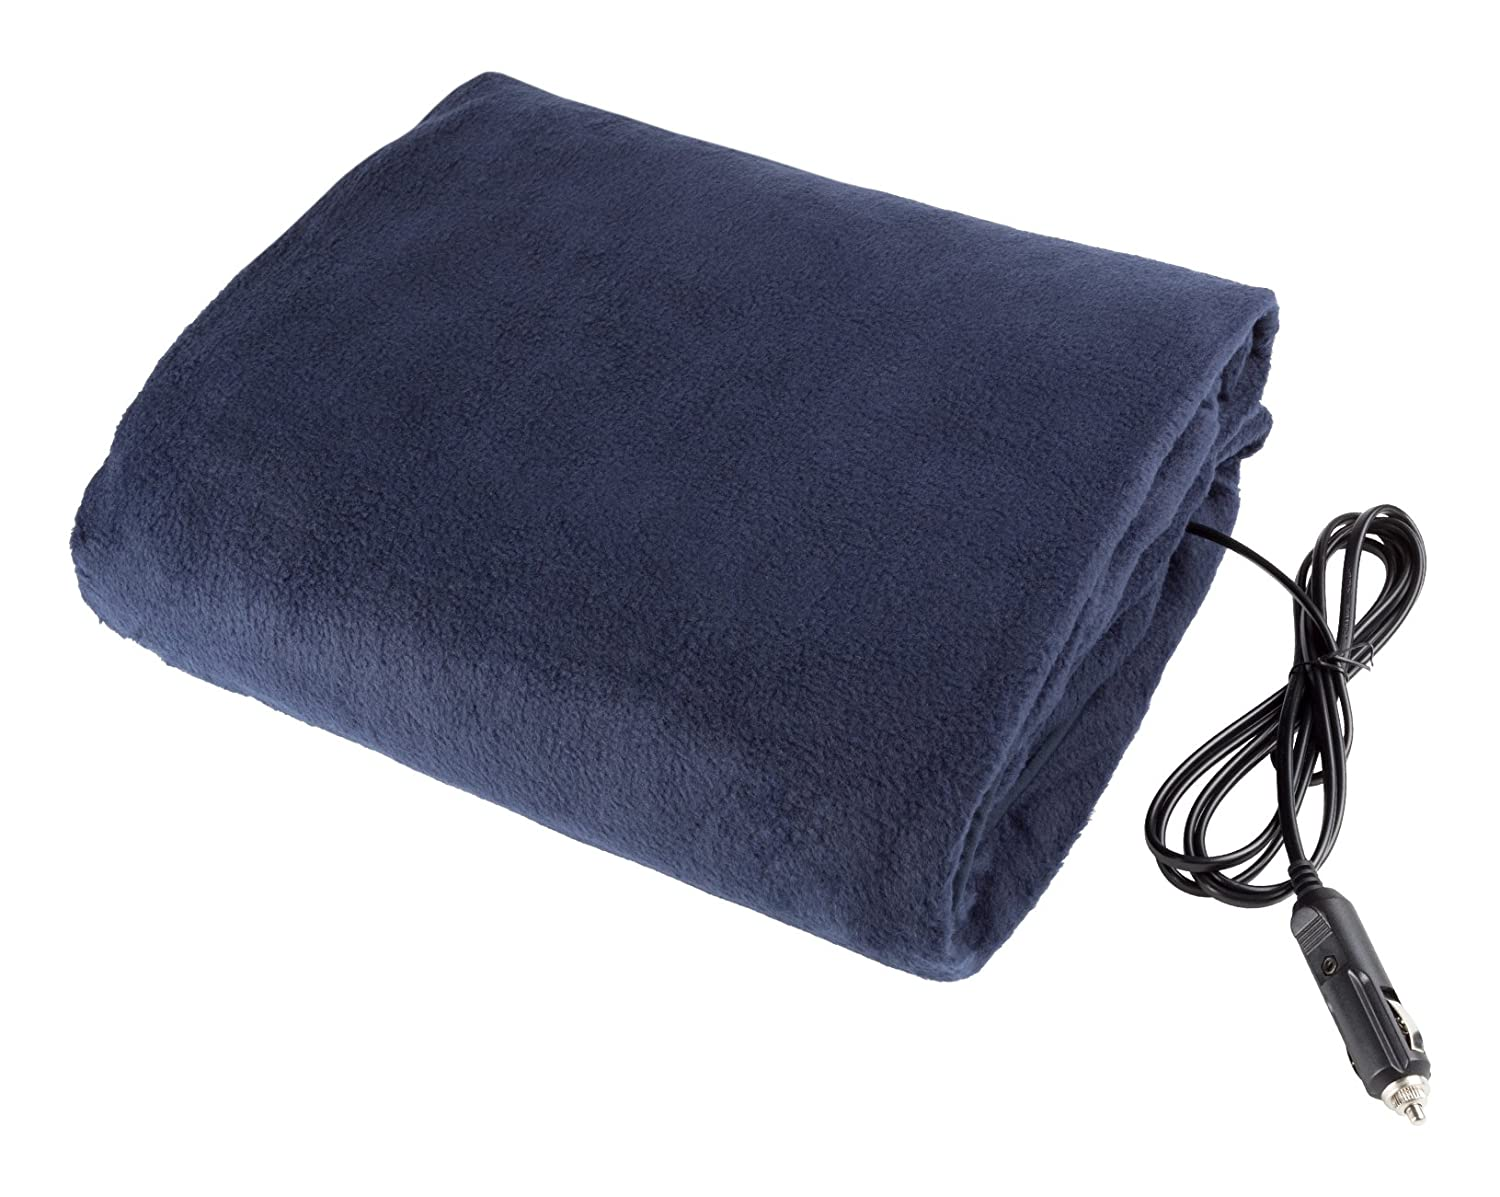 Trademark Electric Car Blanket}